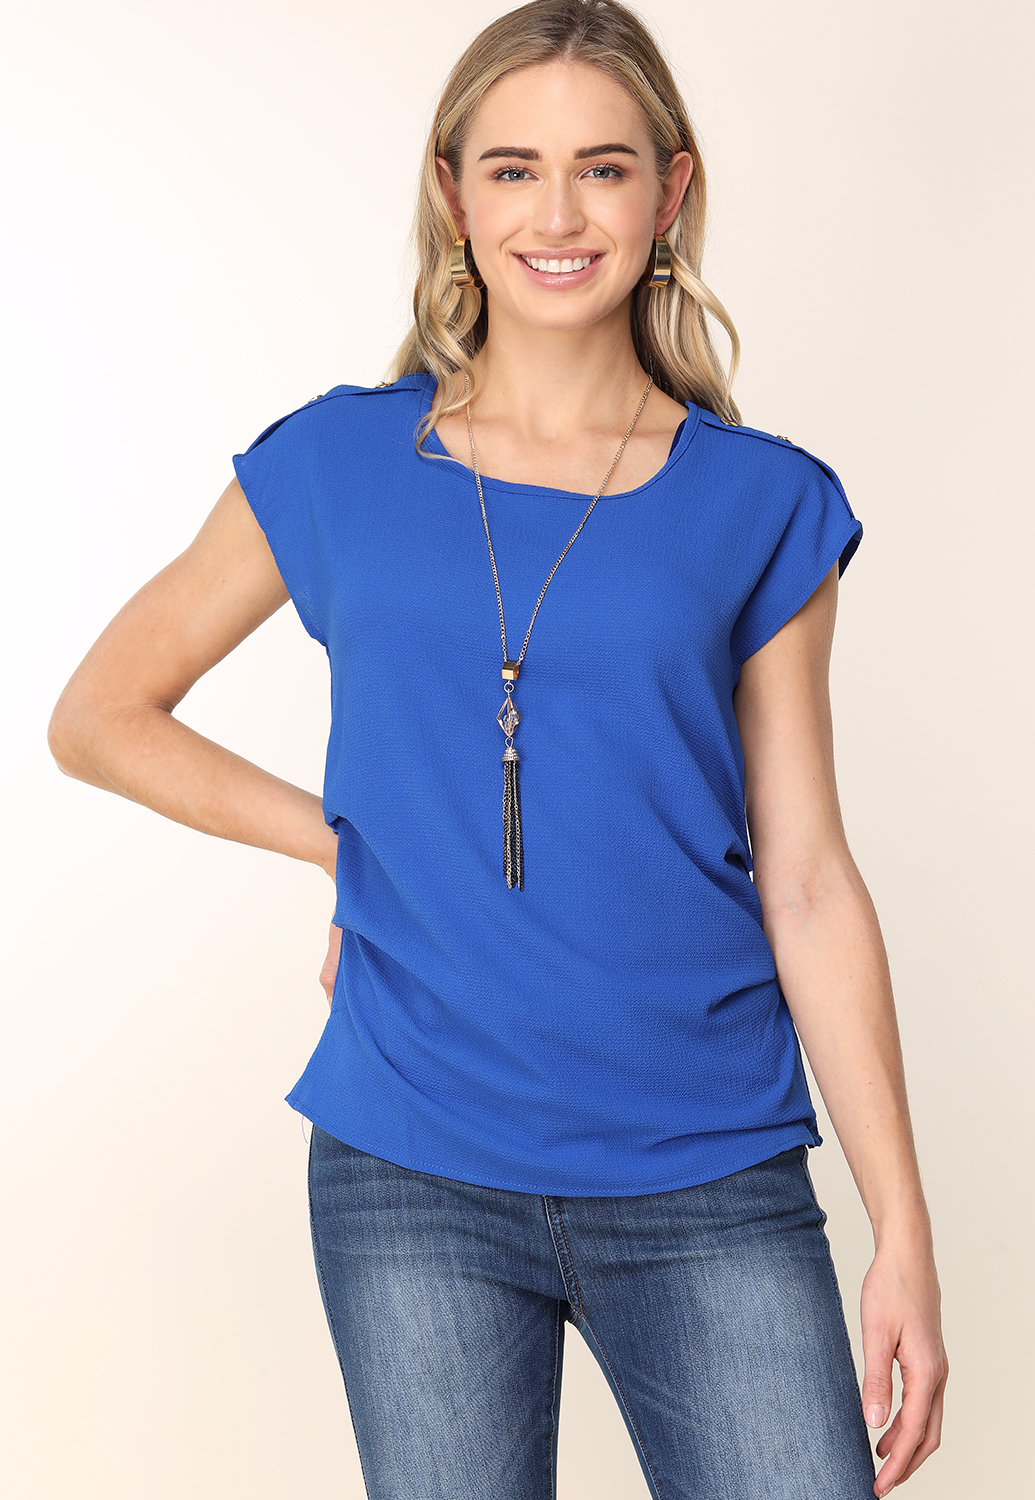 Dressy Top W/ Necklace